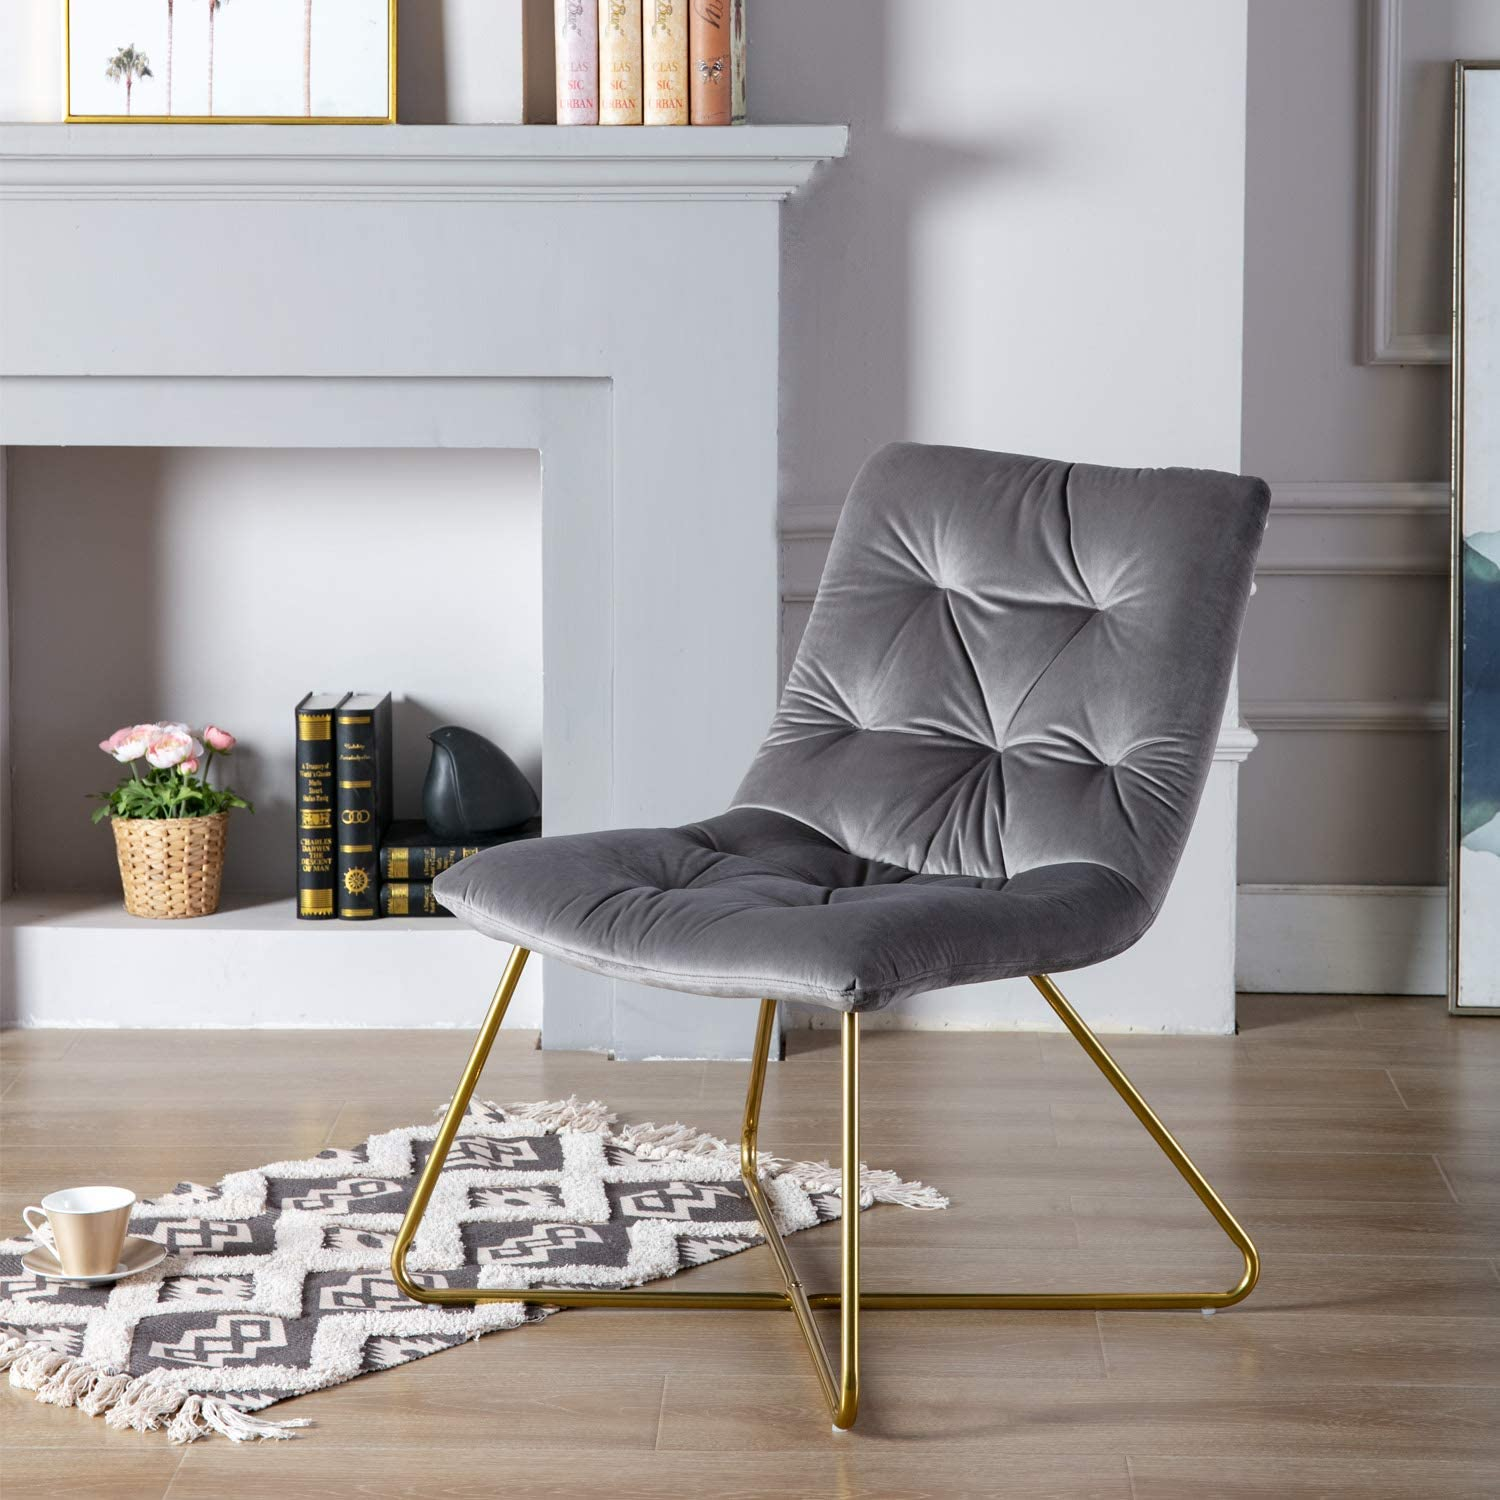 Guyou Modern Living Room Chair, Tufted Velvet Accent Lounge Chair, Comfy Armless Single Sofa with Gold Plating Legs for Bedroom/Vanity/Living Room(Grey) Grey